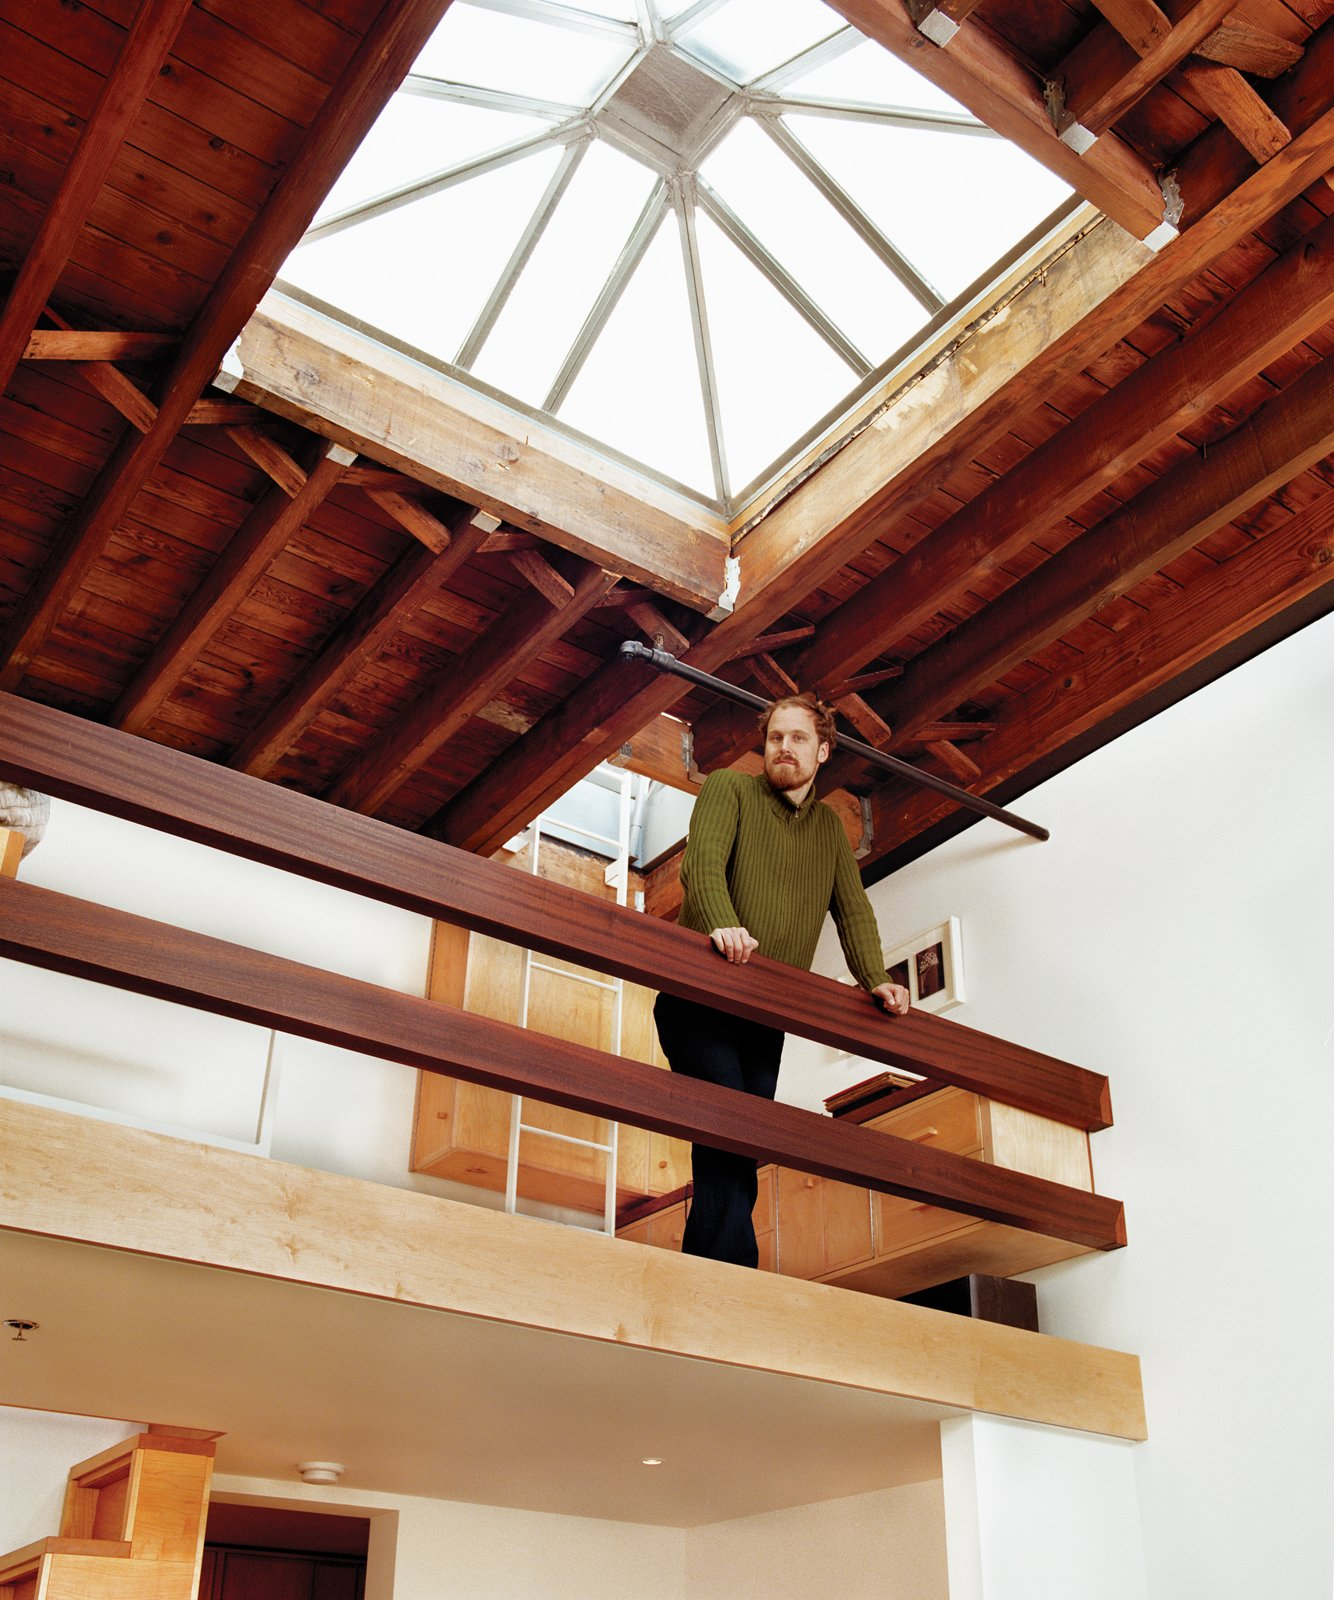 The sleeping loft is fitted with mahogany rails.  Clever Loft Spaces for Small Places by Diana Budds from Brooklyn